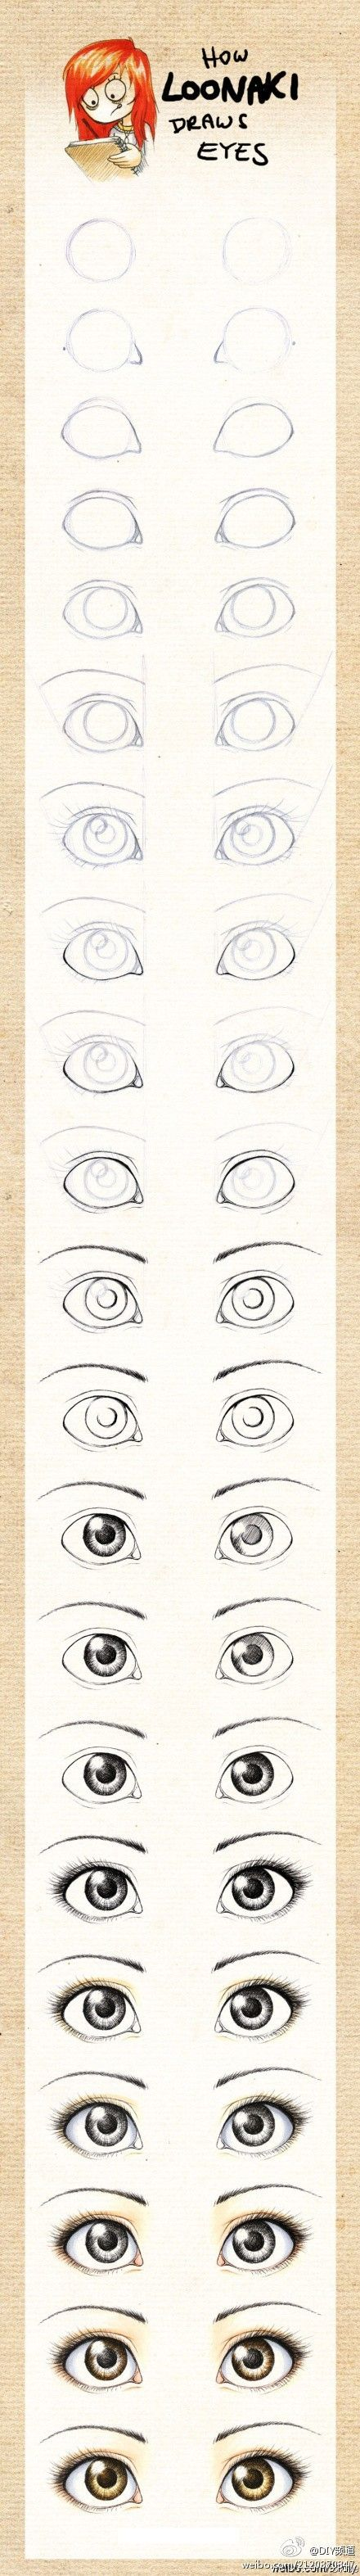 Eye - Step by step - Good instructions